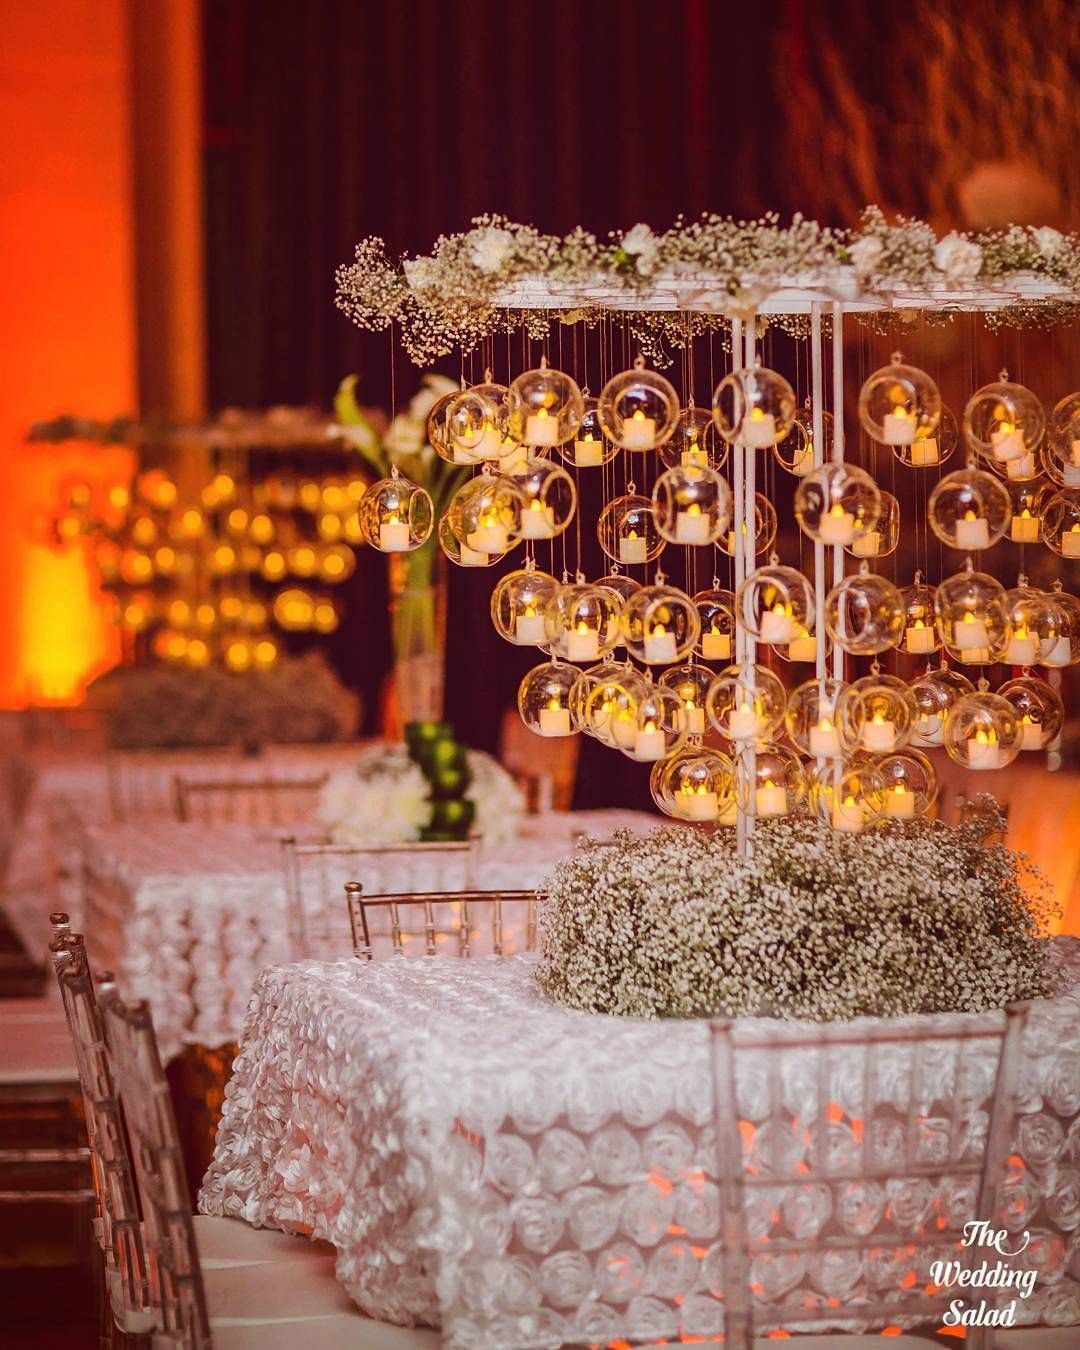 White Luxury Wedding Decor With Wonderful And Beautiful: Beautiful Centerpiece At Muscat Wedding